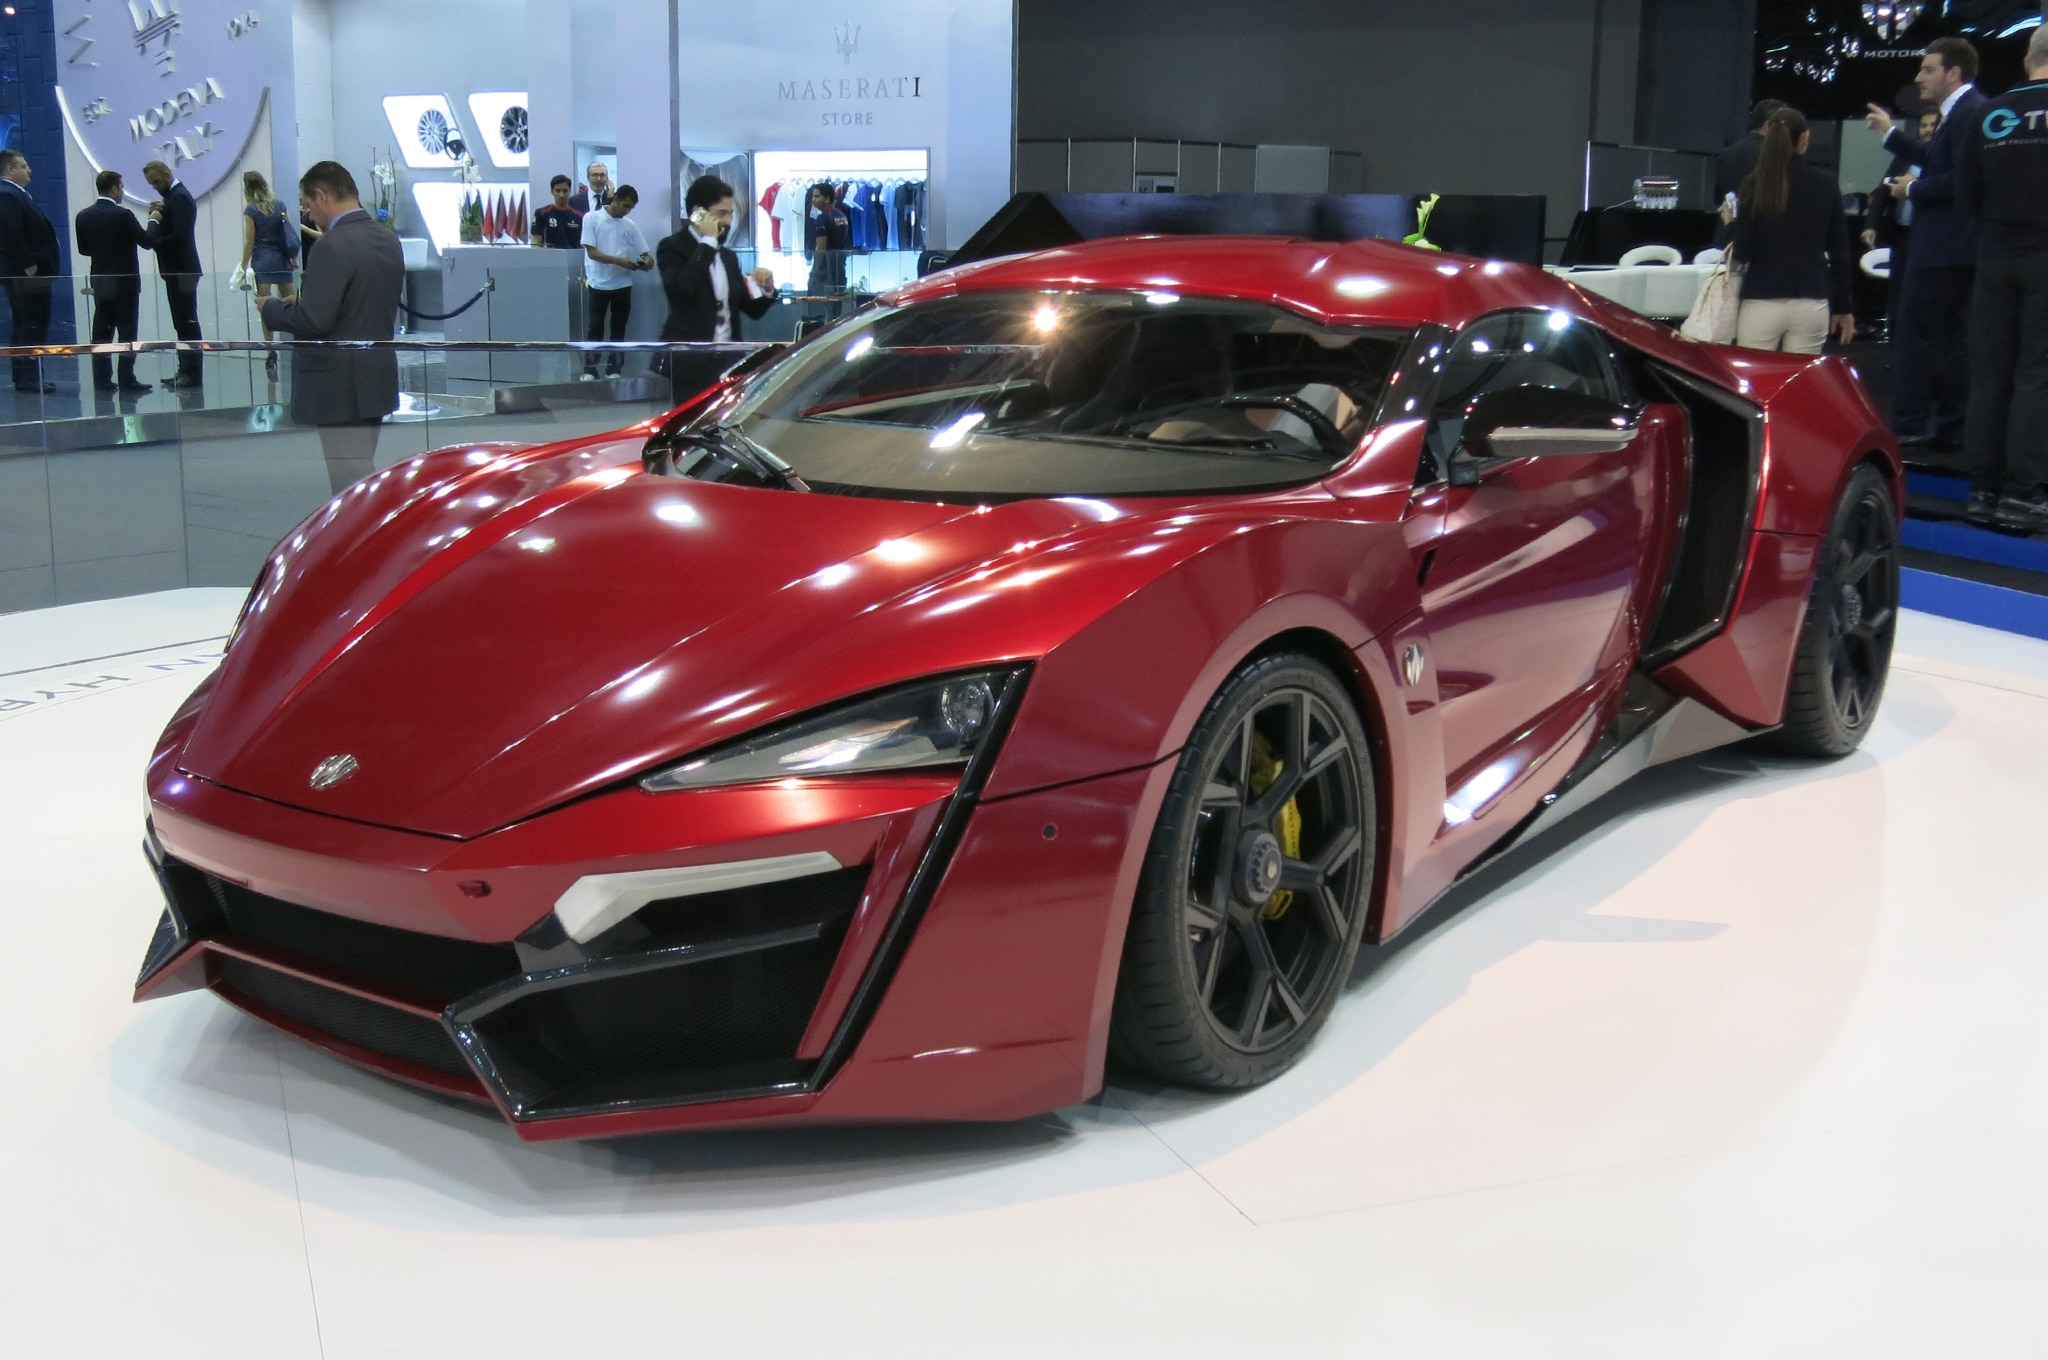 Hyper Sport Car Price >> All That Glittered: Our 11 Favorite Cars from the 2015 Dubai Auto Show